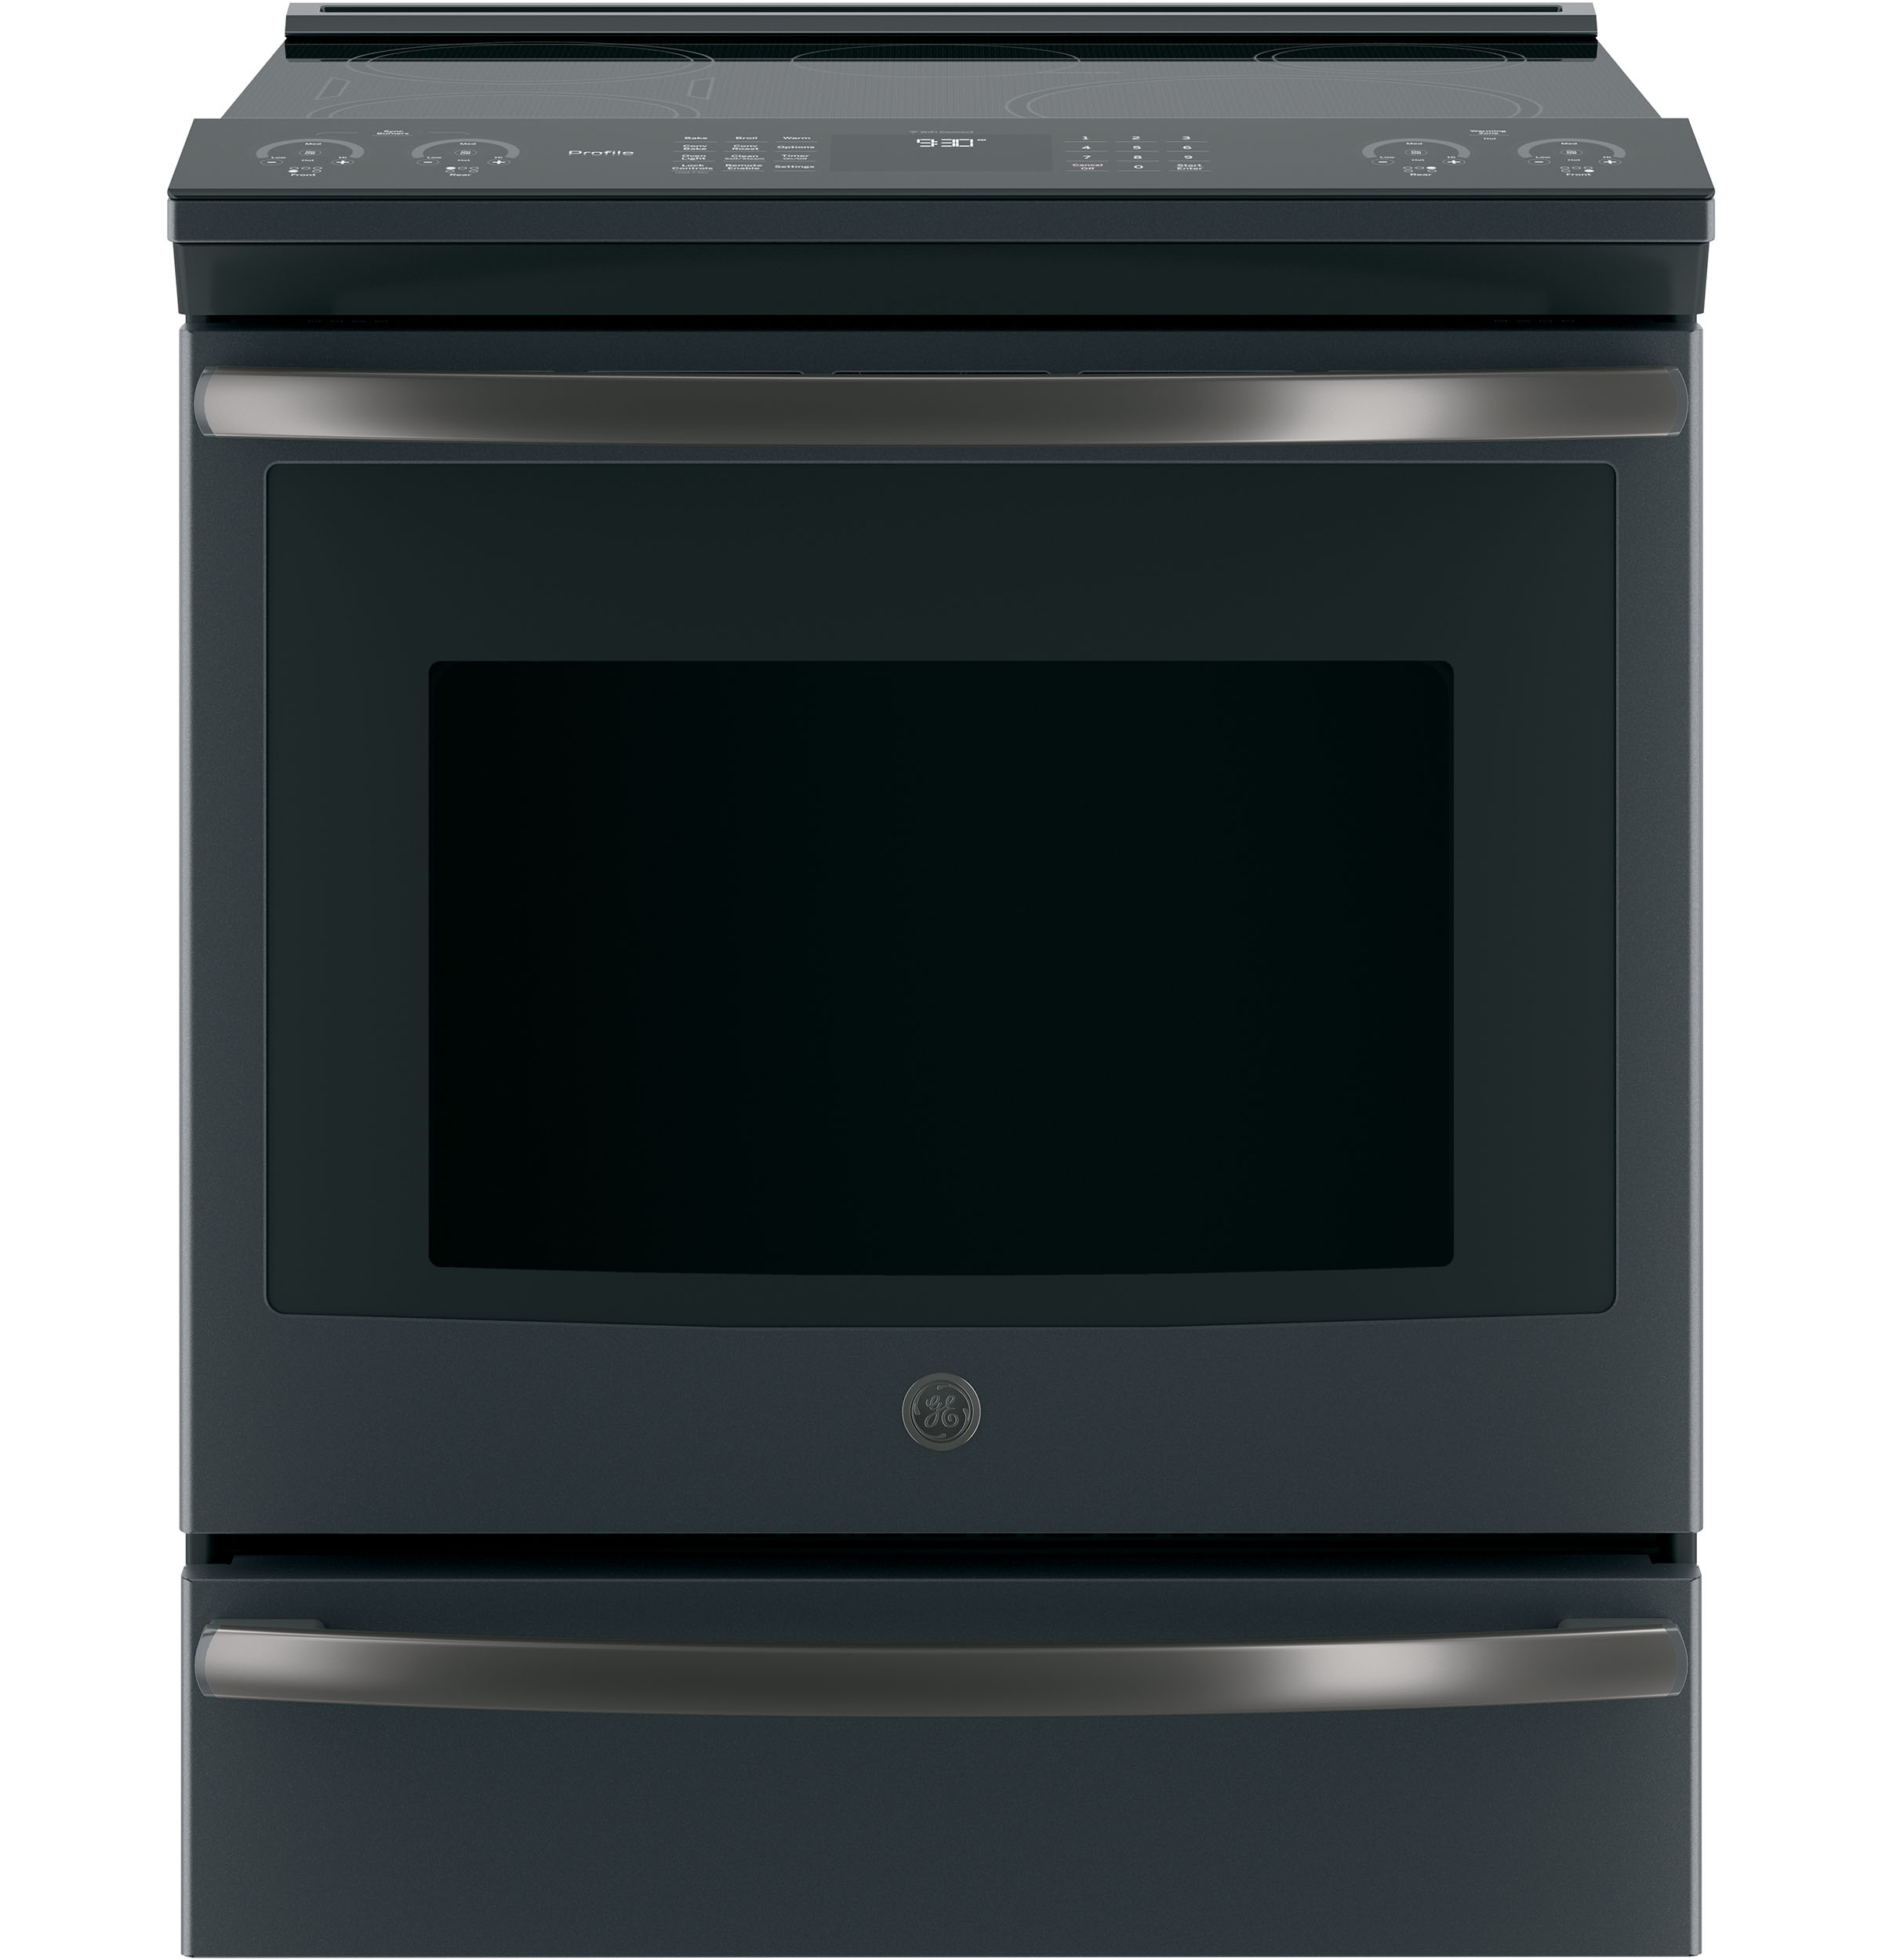 "GE Profile GE Profile™ Series 30"" Slide-In Front Control Induction and Convection Range"